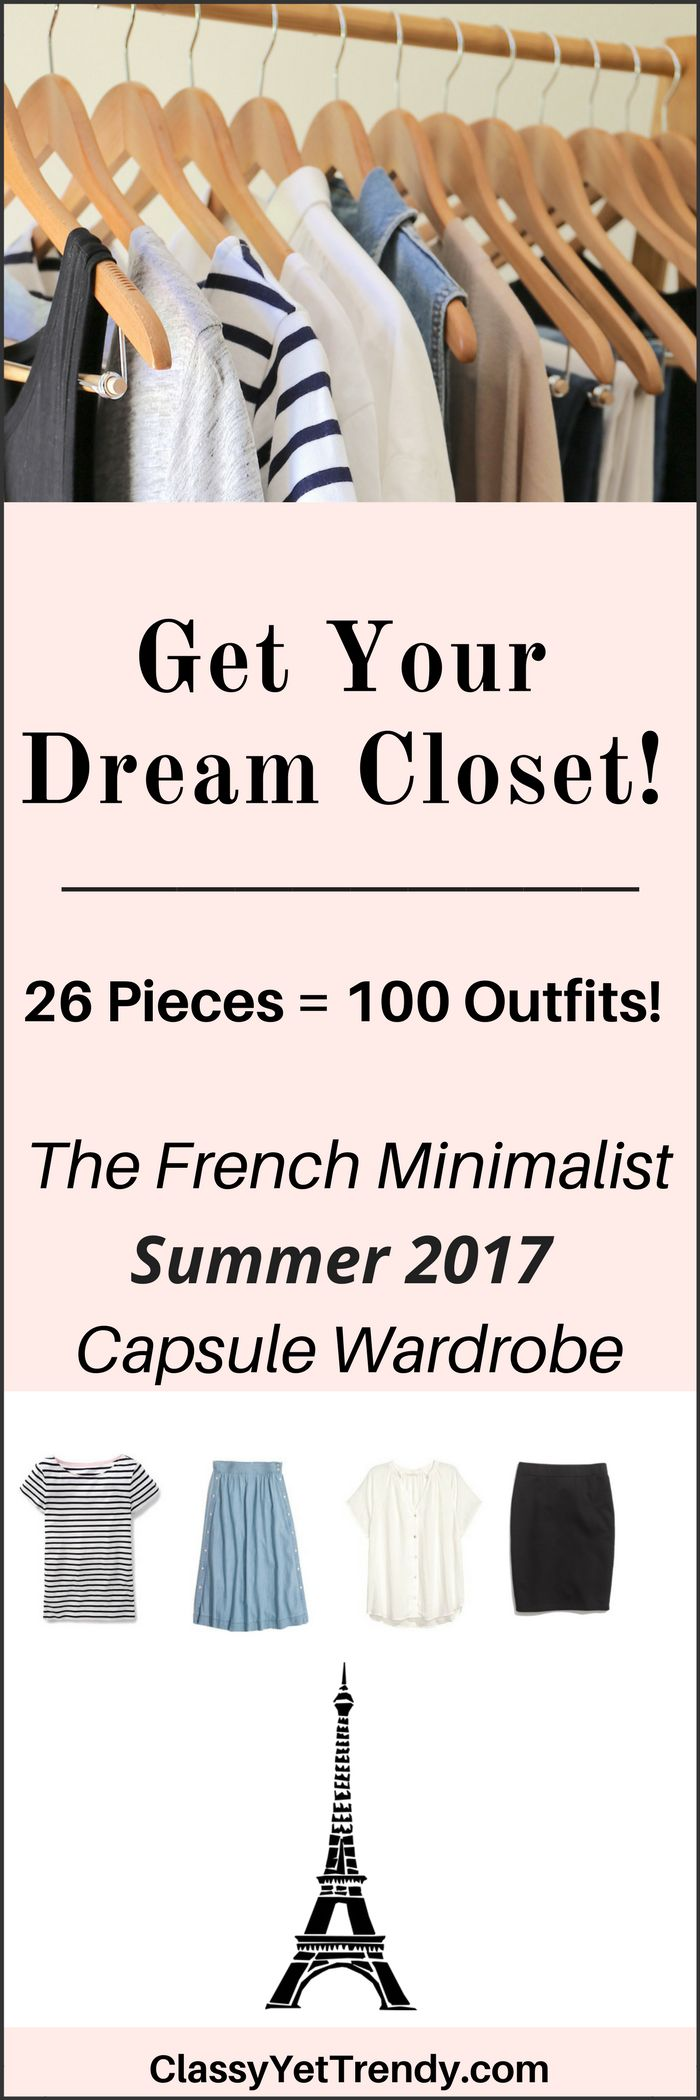 French Minimalist Summer 2017 Capsule Wardrobe - Transform your closet with this e-Book.  It will show you how to mix and match clothes and shoes to create for dozens of outfit ideas that you will love!  You probably have several of these clothes and shoes in your closet already.  Create the closet of your dreams today with this handy guide!